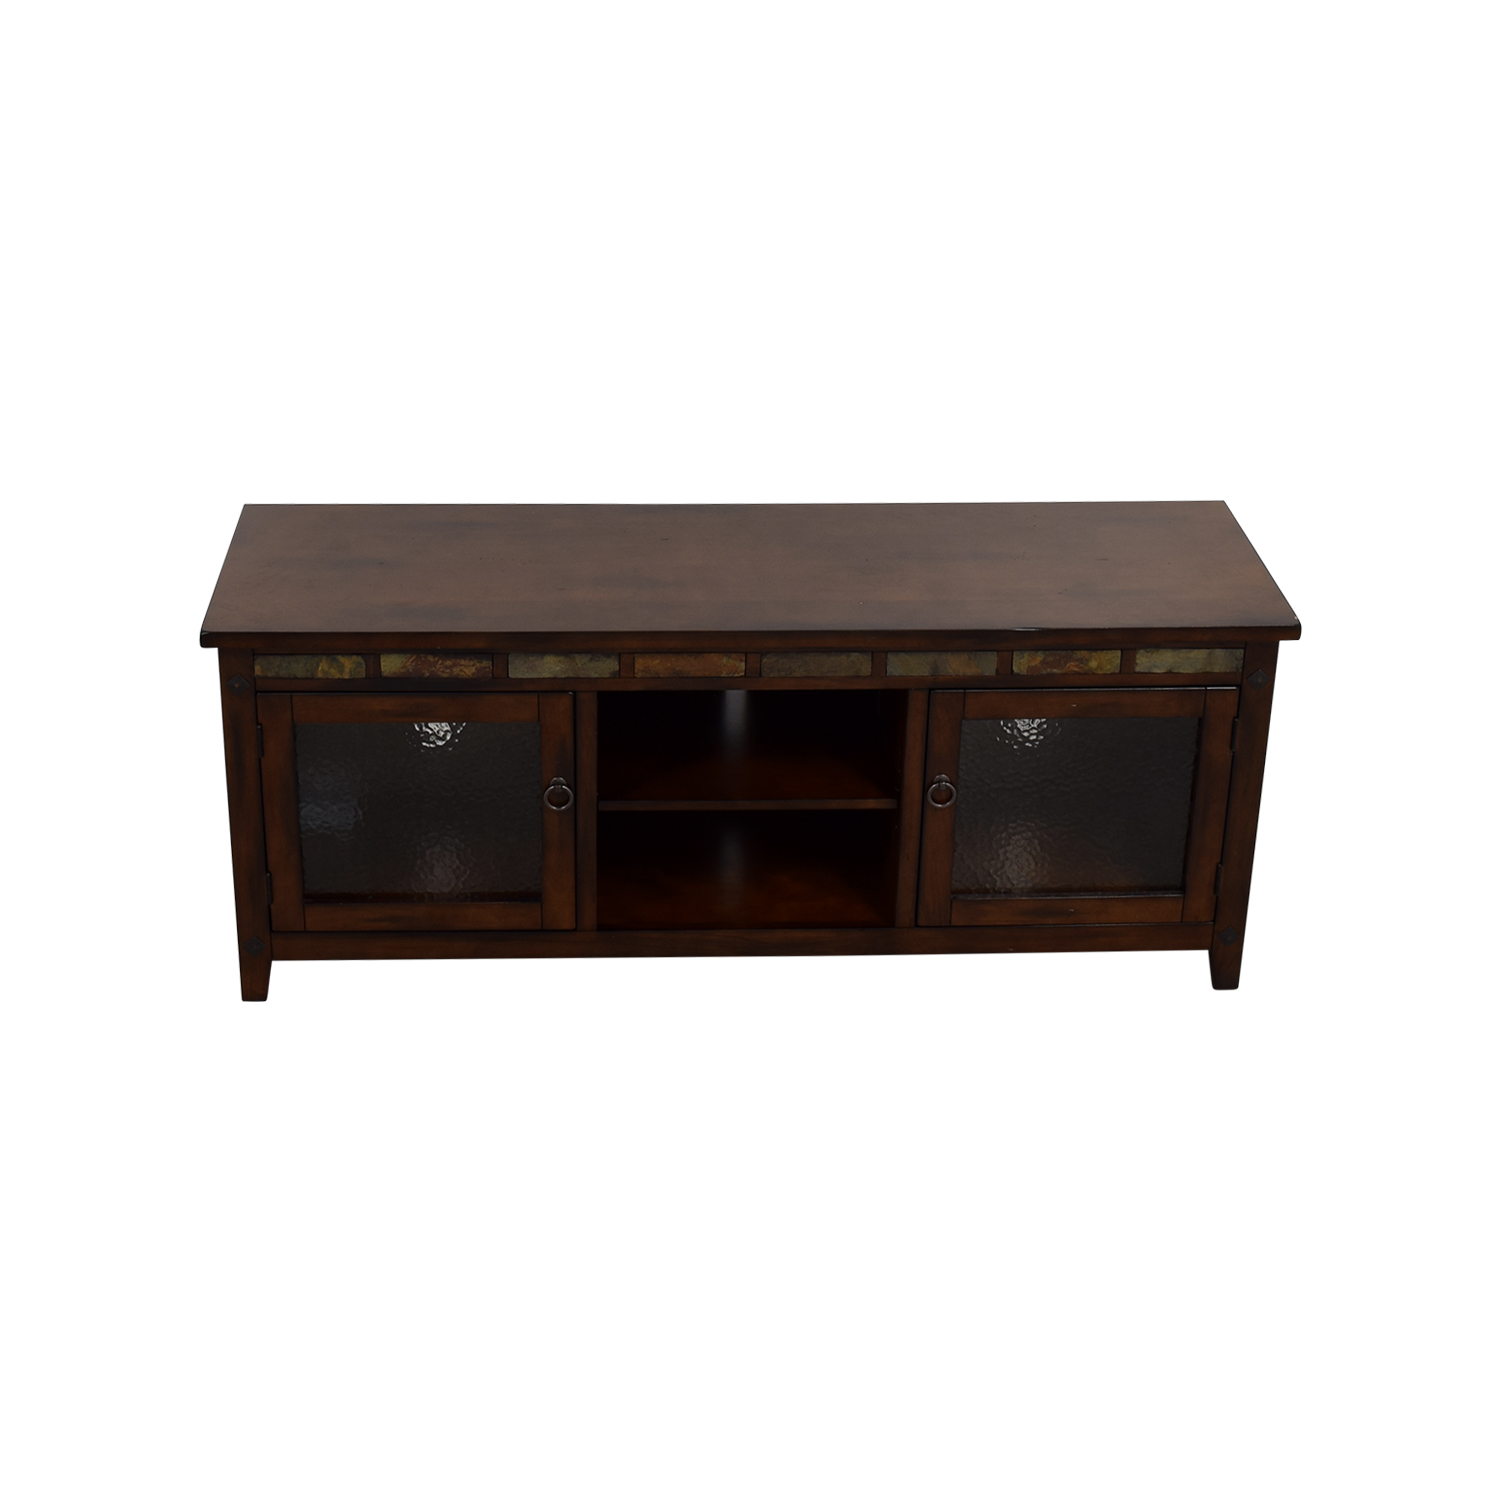 shop Bobs Furniture Bobs Furniture Santa Fe Console online